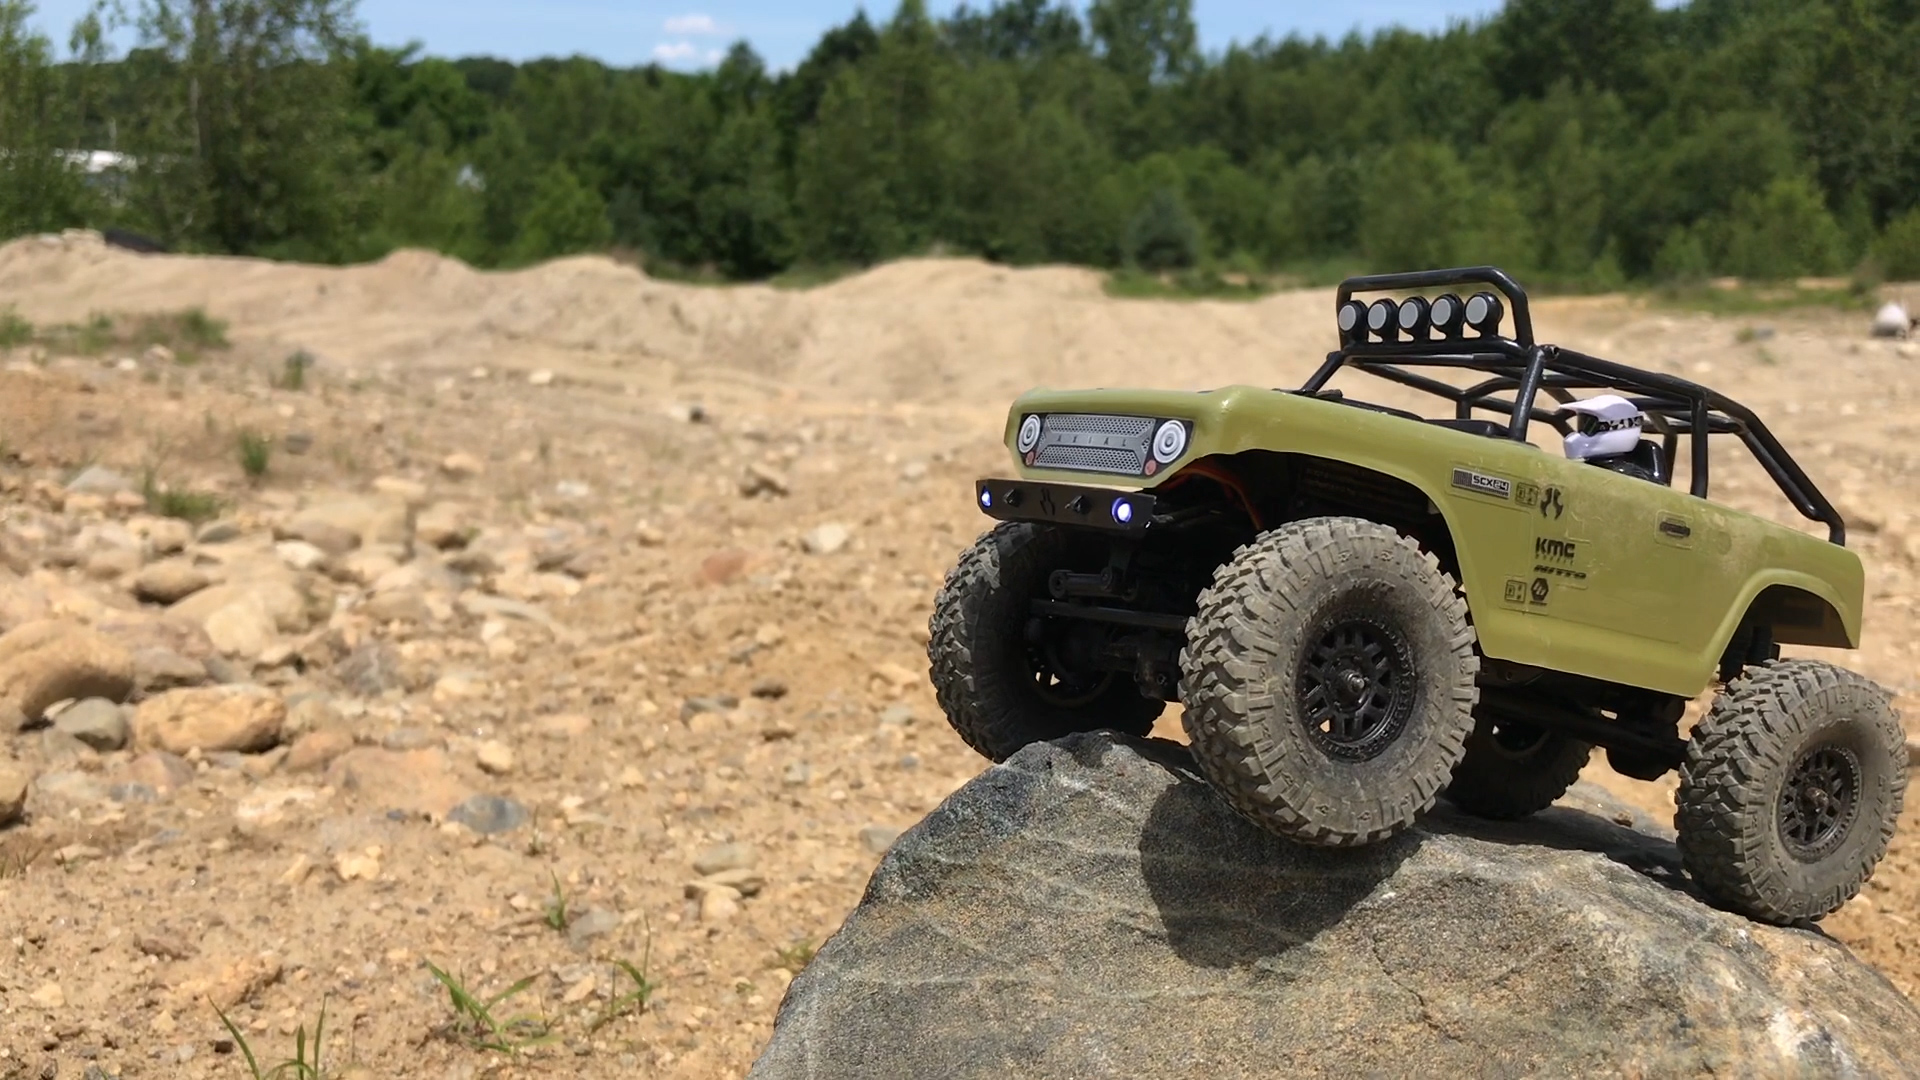 Off-Road Adventure Time With The Axial SCX24 Deadbolt